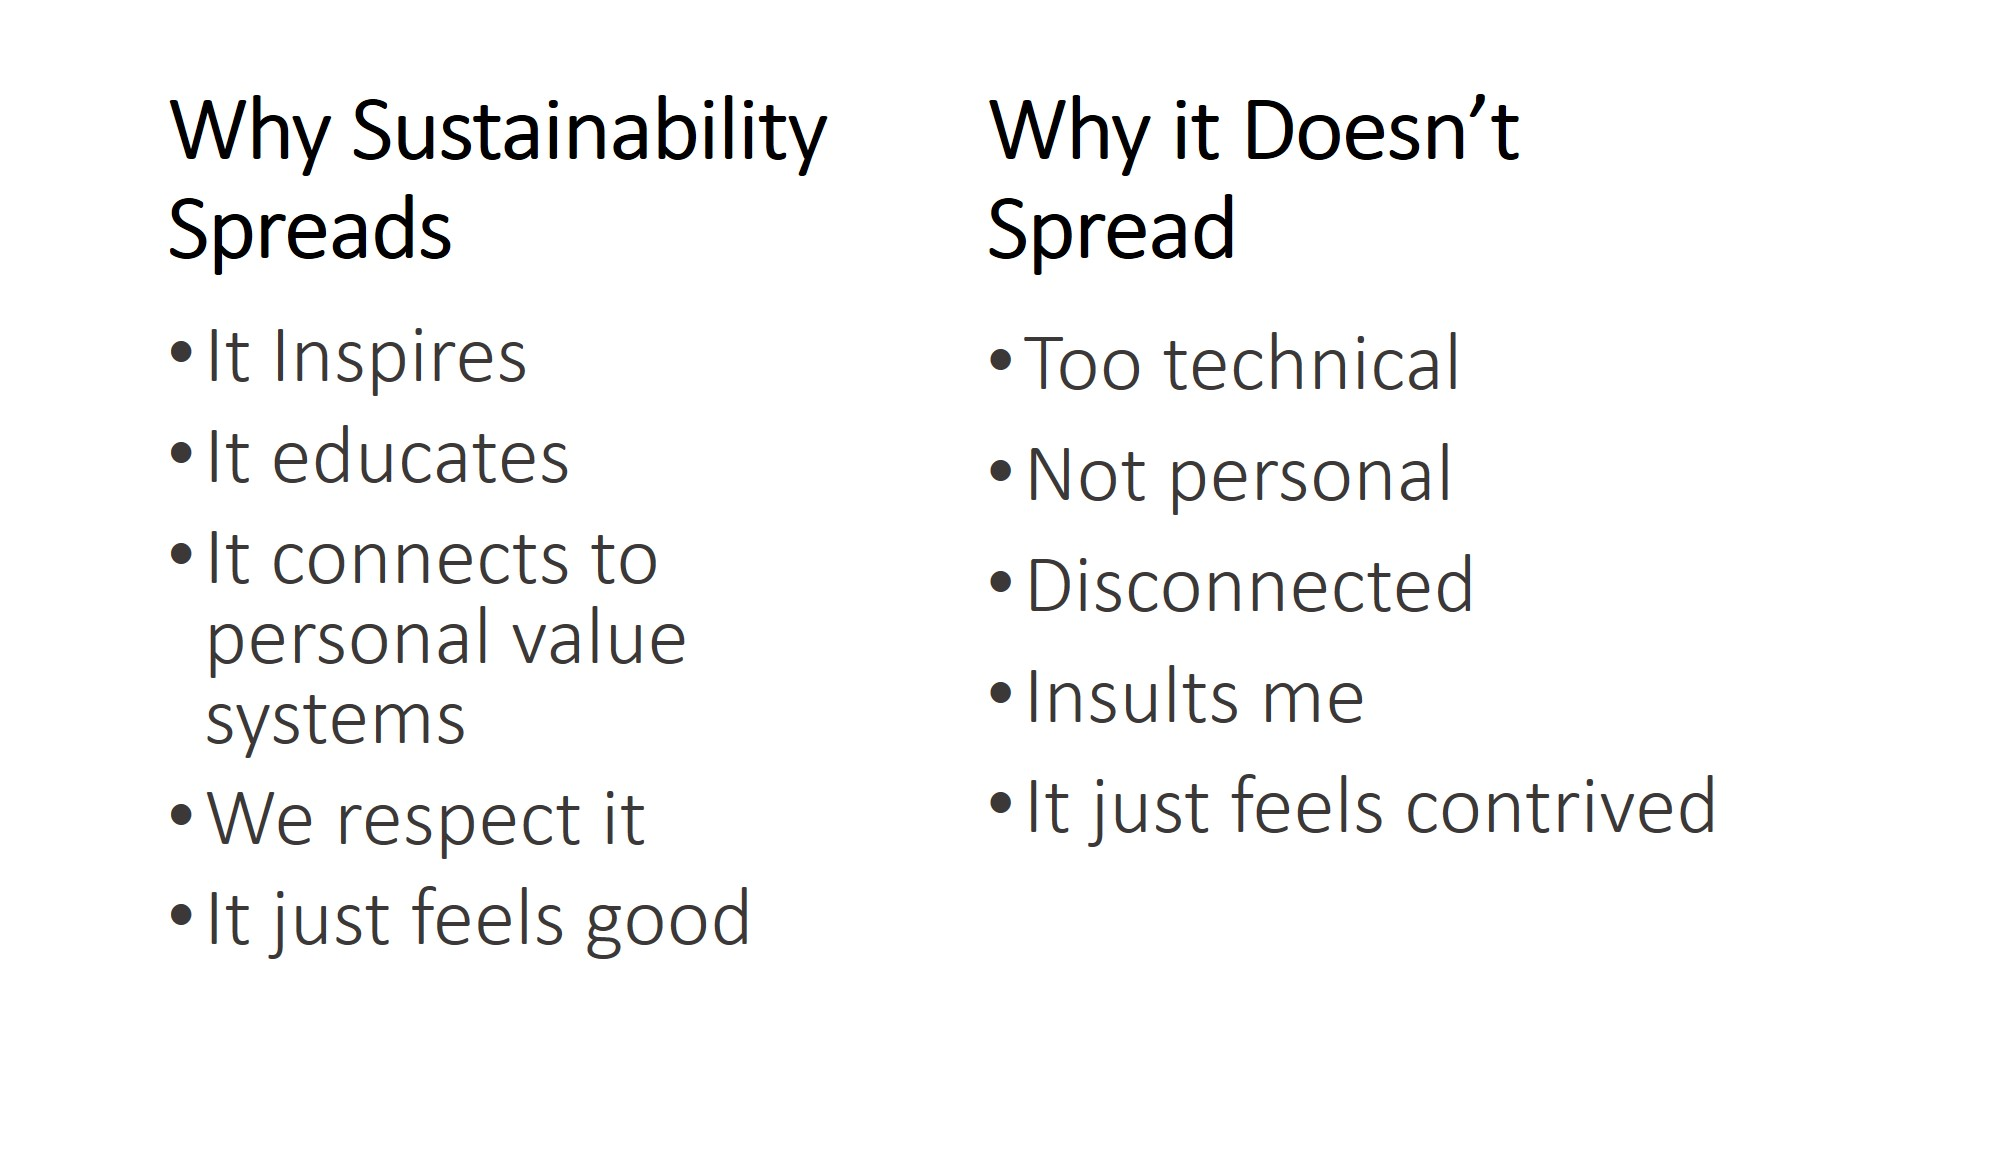 why-sustainability-spreads-or-does-not_lloyd-macfarlane